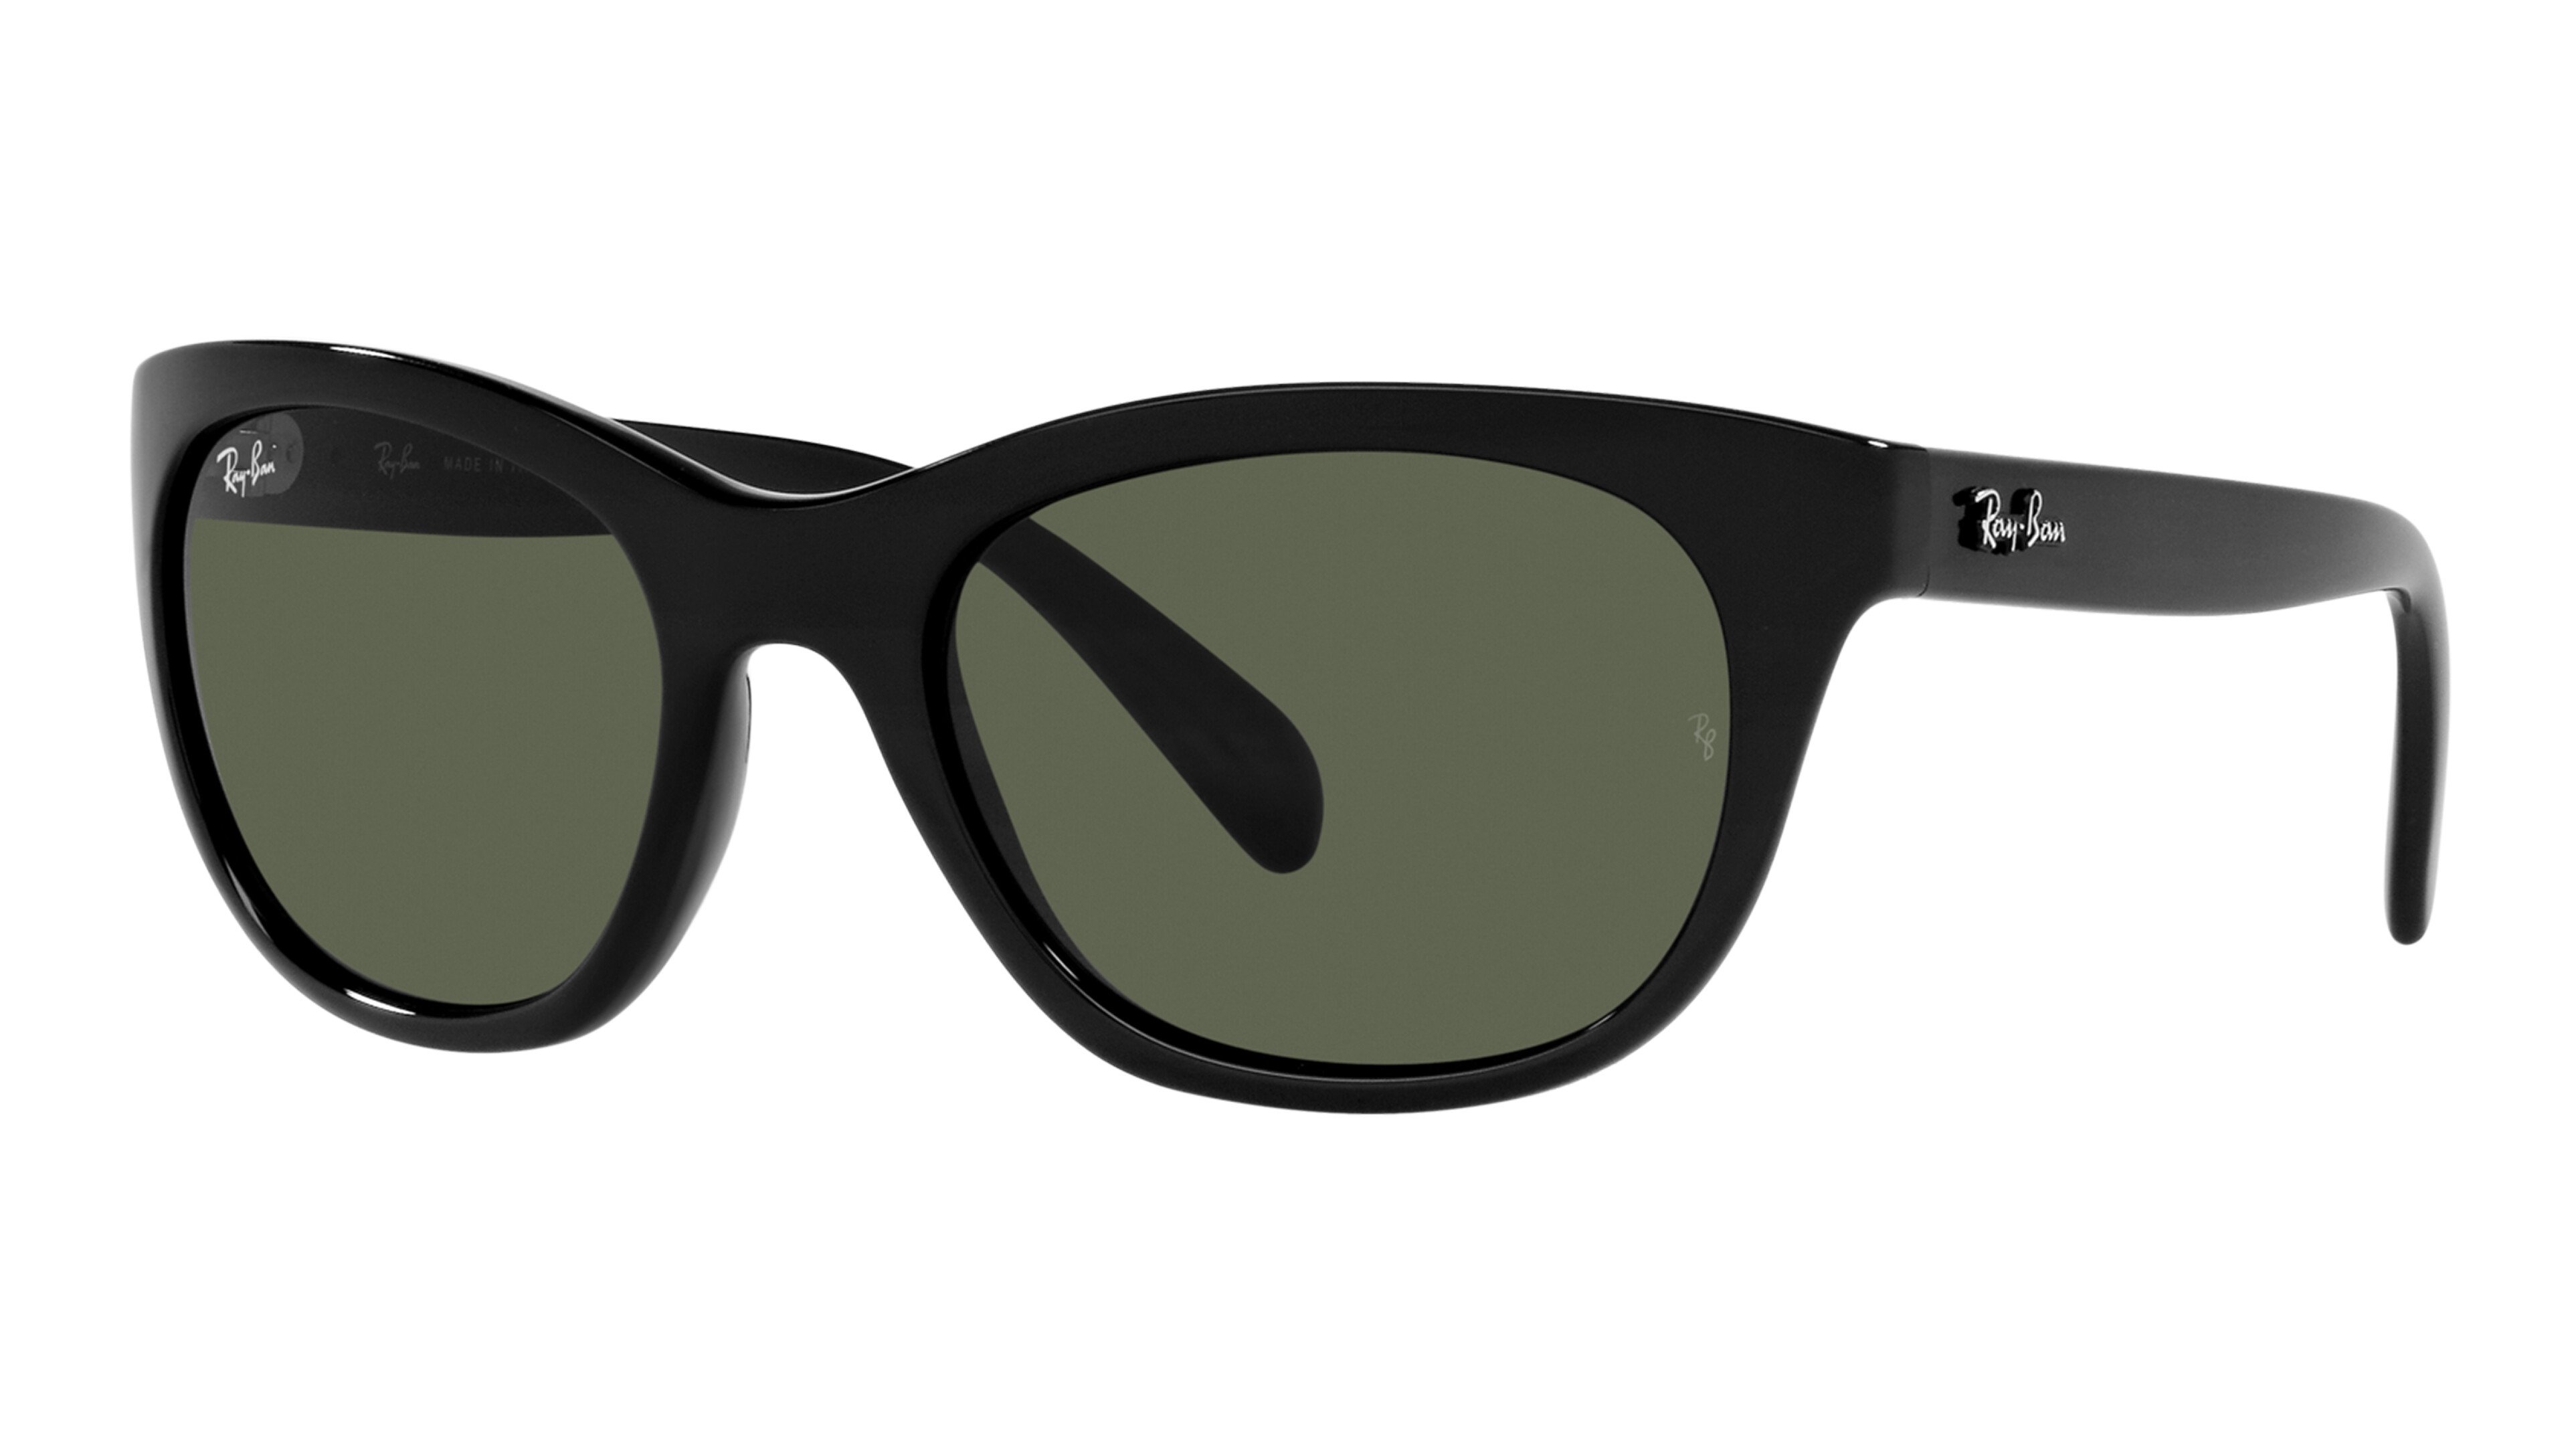 8056597463508-angle-sonnenbrille-ray-ban-0rb4216-601